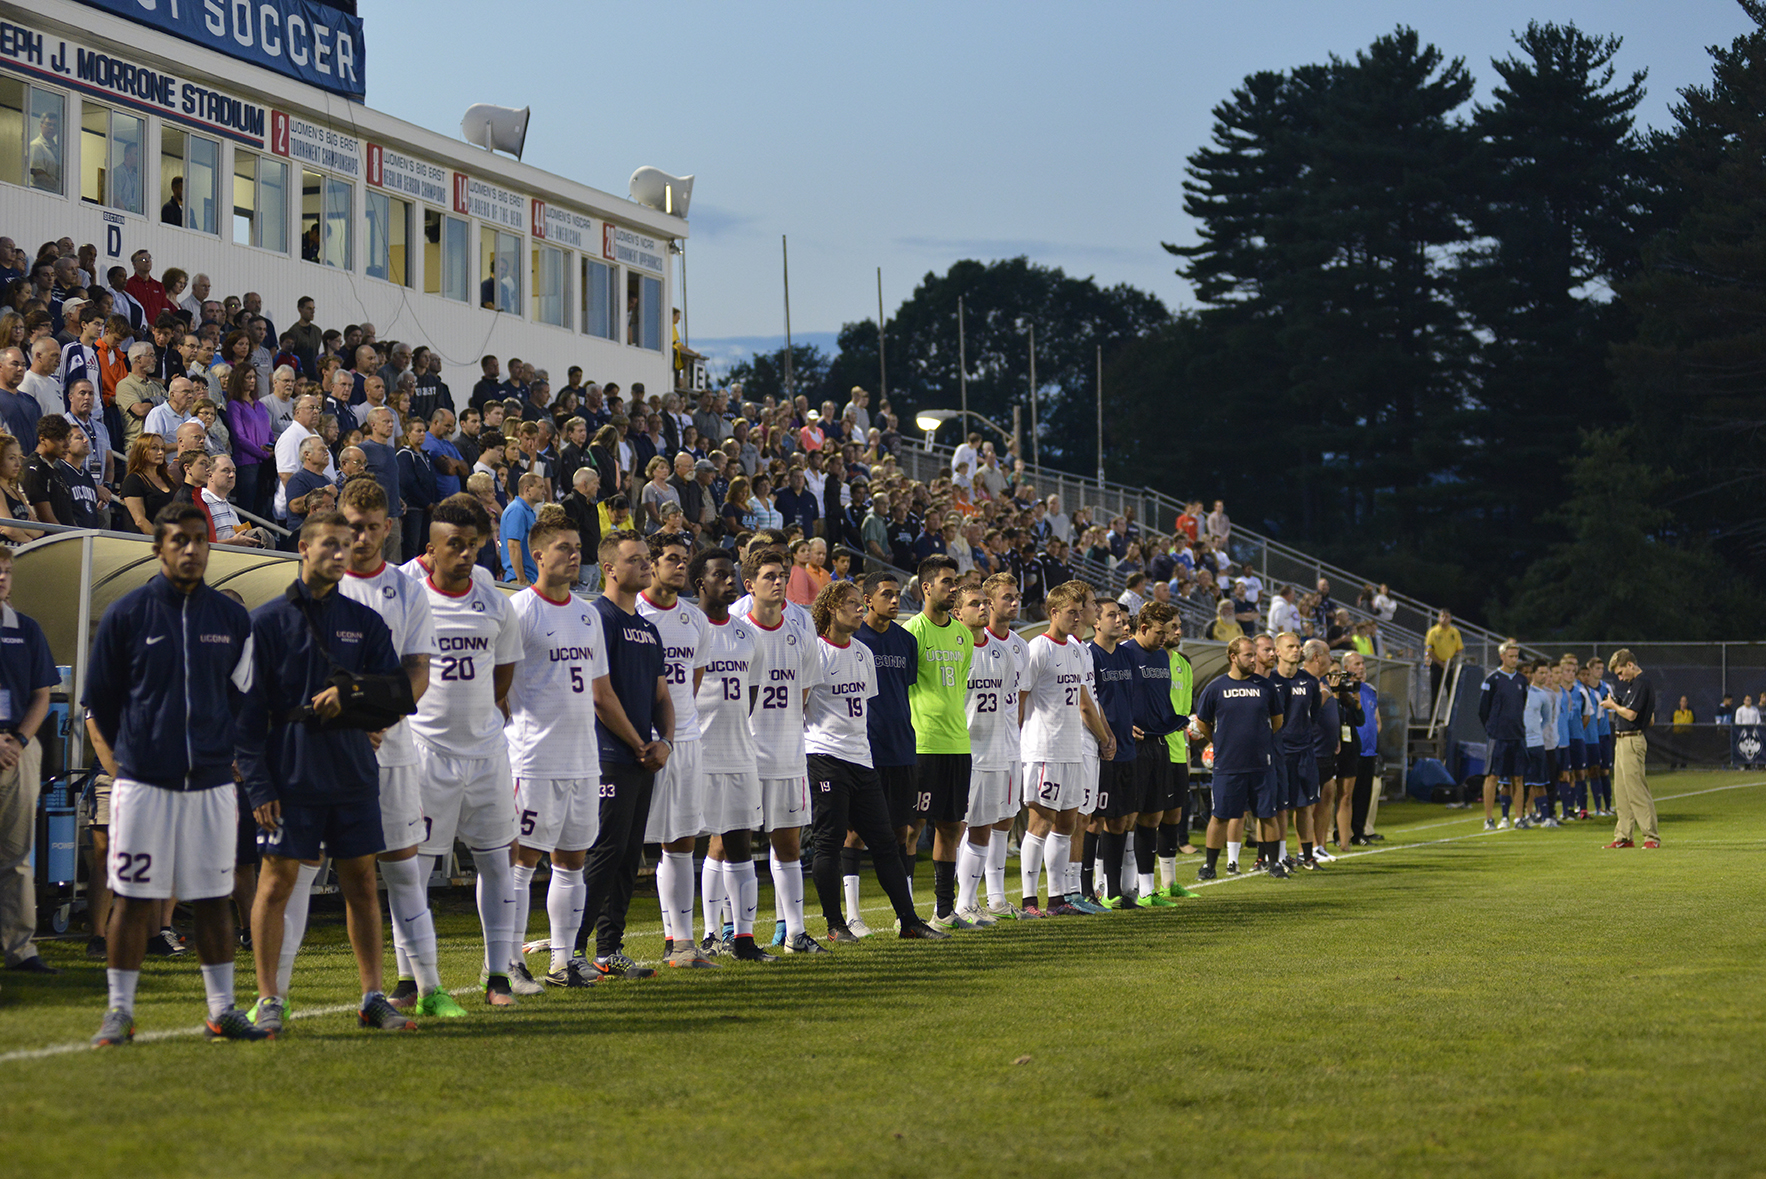 UConn men's soccer team players, coaches and staff stand on the sideline at Joseph J. Morrone Stadium prior to the team's game against Rhode Island in Storrs, Connecticut on Saturday, Sept. 19, 2015. (Jason Jiang/The Daily Campus)